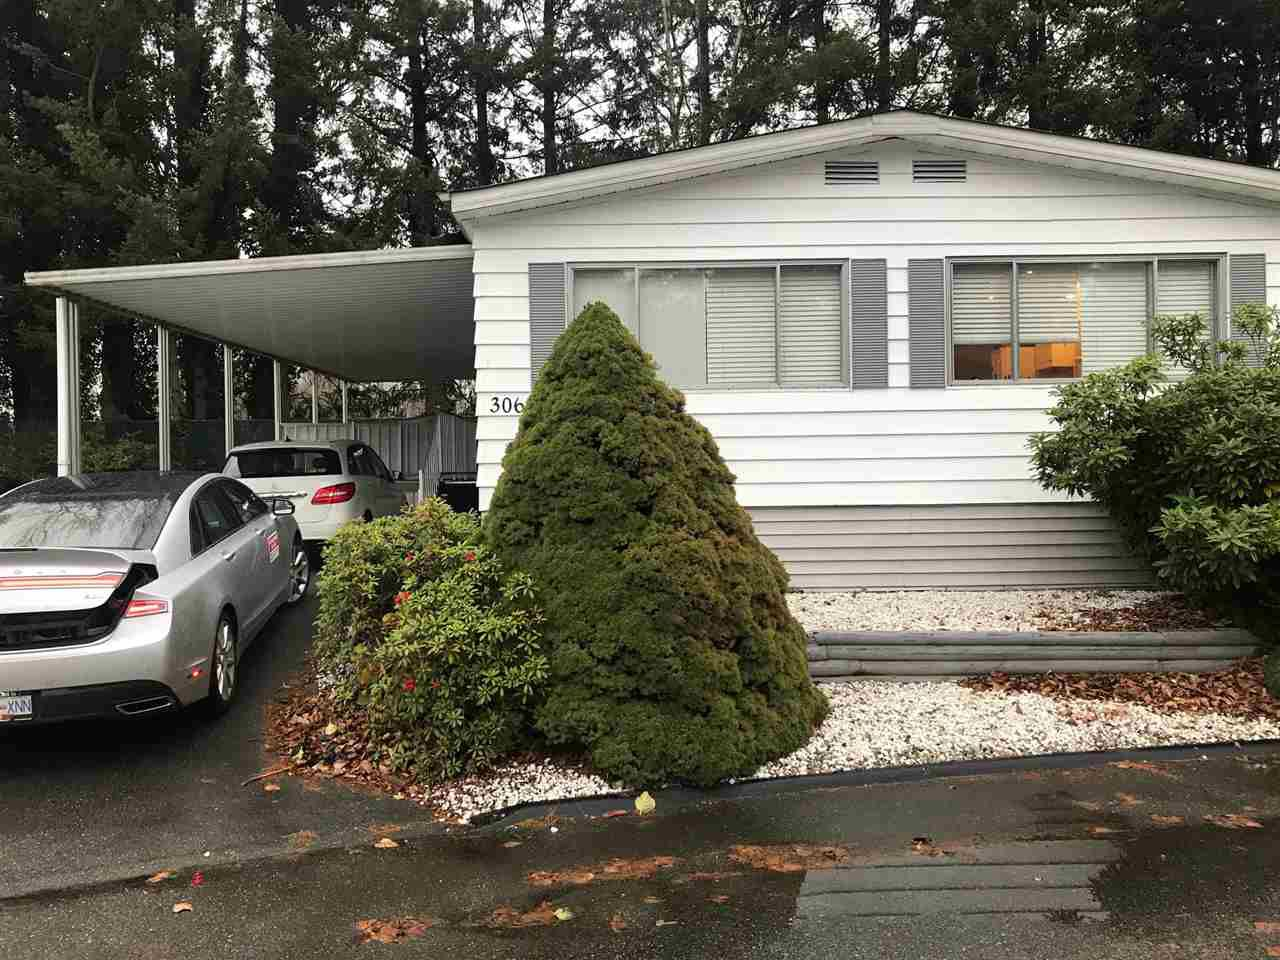 "Main Photo: 306 1840 160 Street in Surrey: King George Corridor Manufactured Home for sale in ""Breakaway Bays"" (South Surrey White Rock)  : MLS®# R2224617"